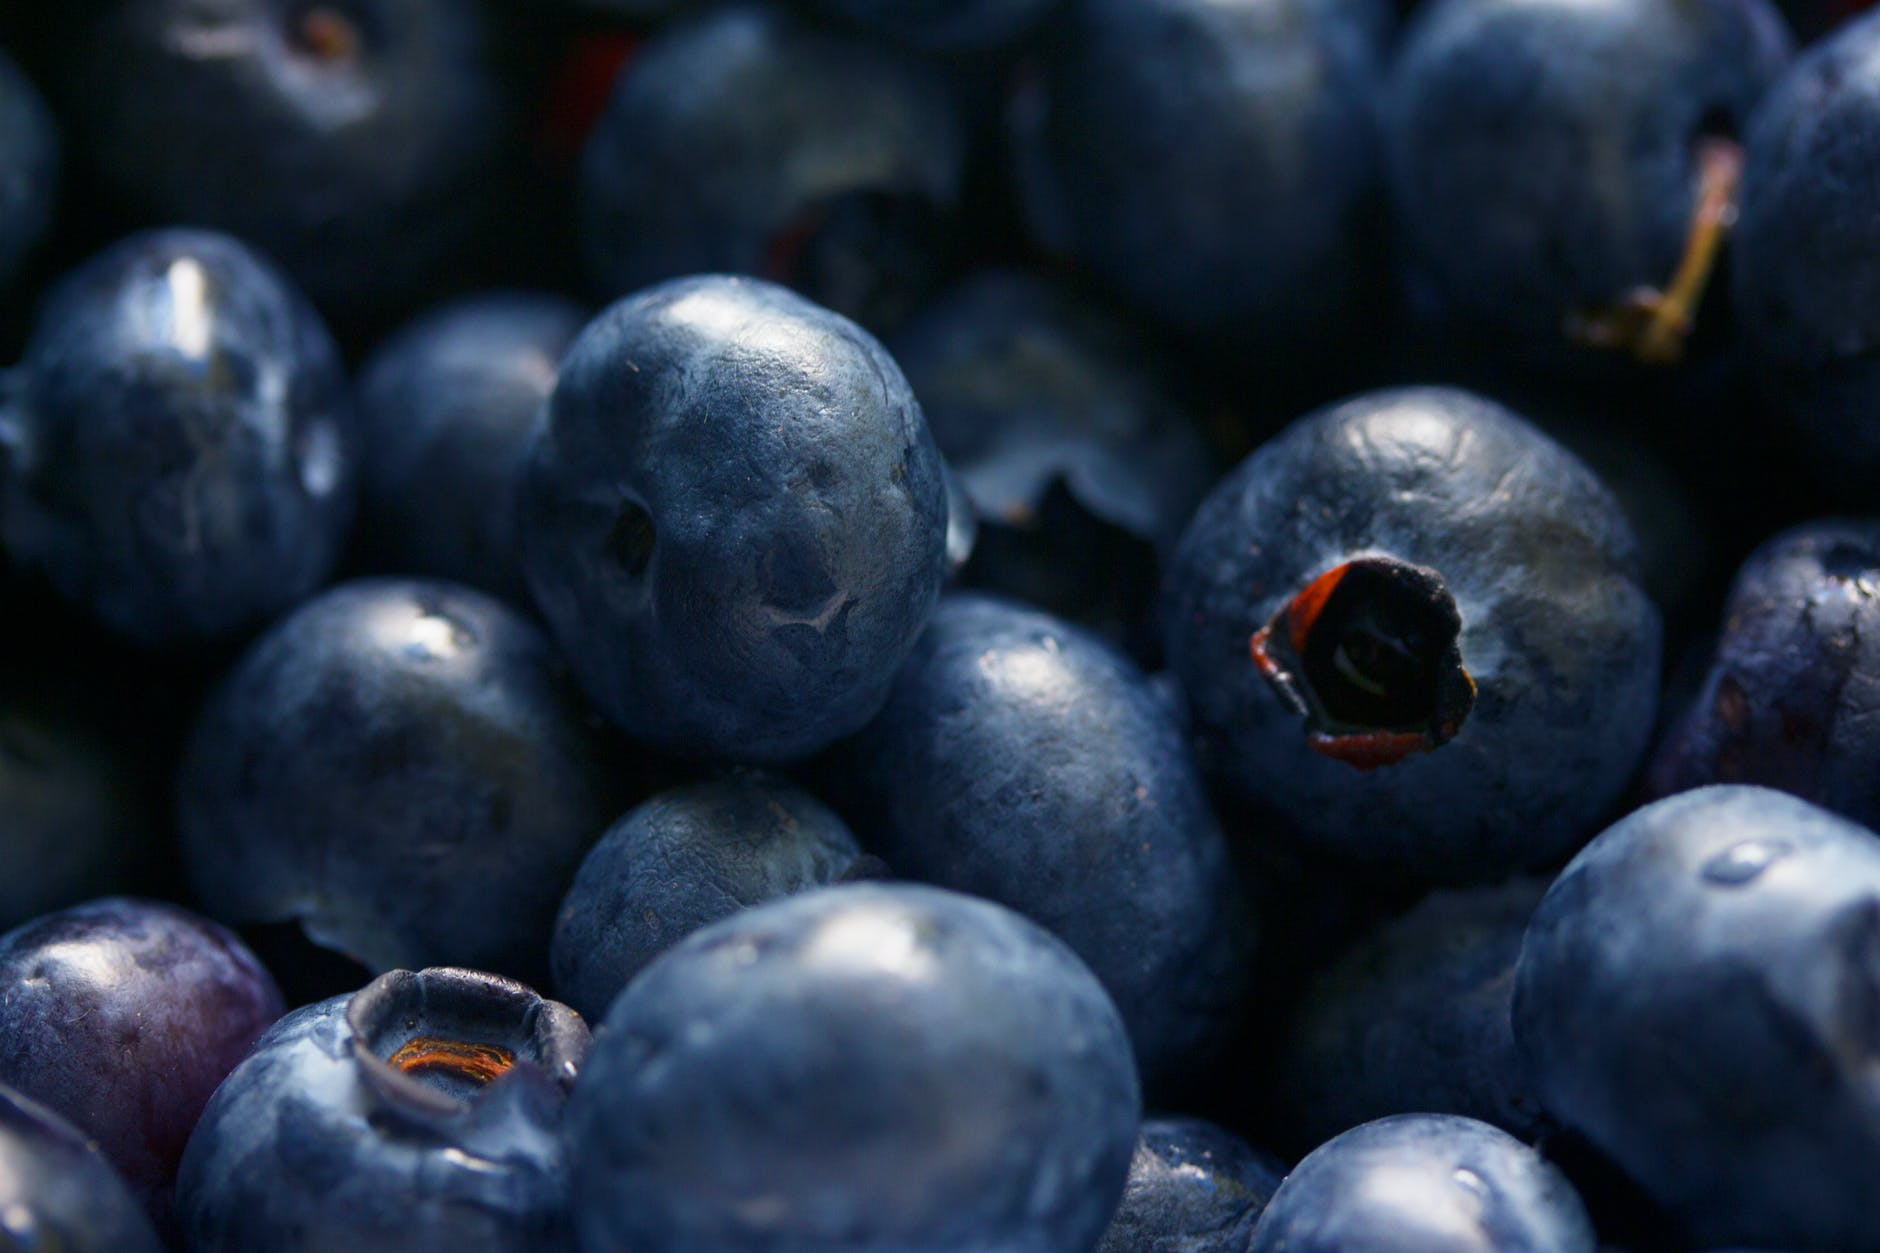 The Nutritional Benefits of Blueberries